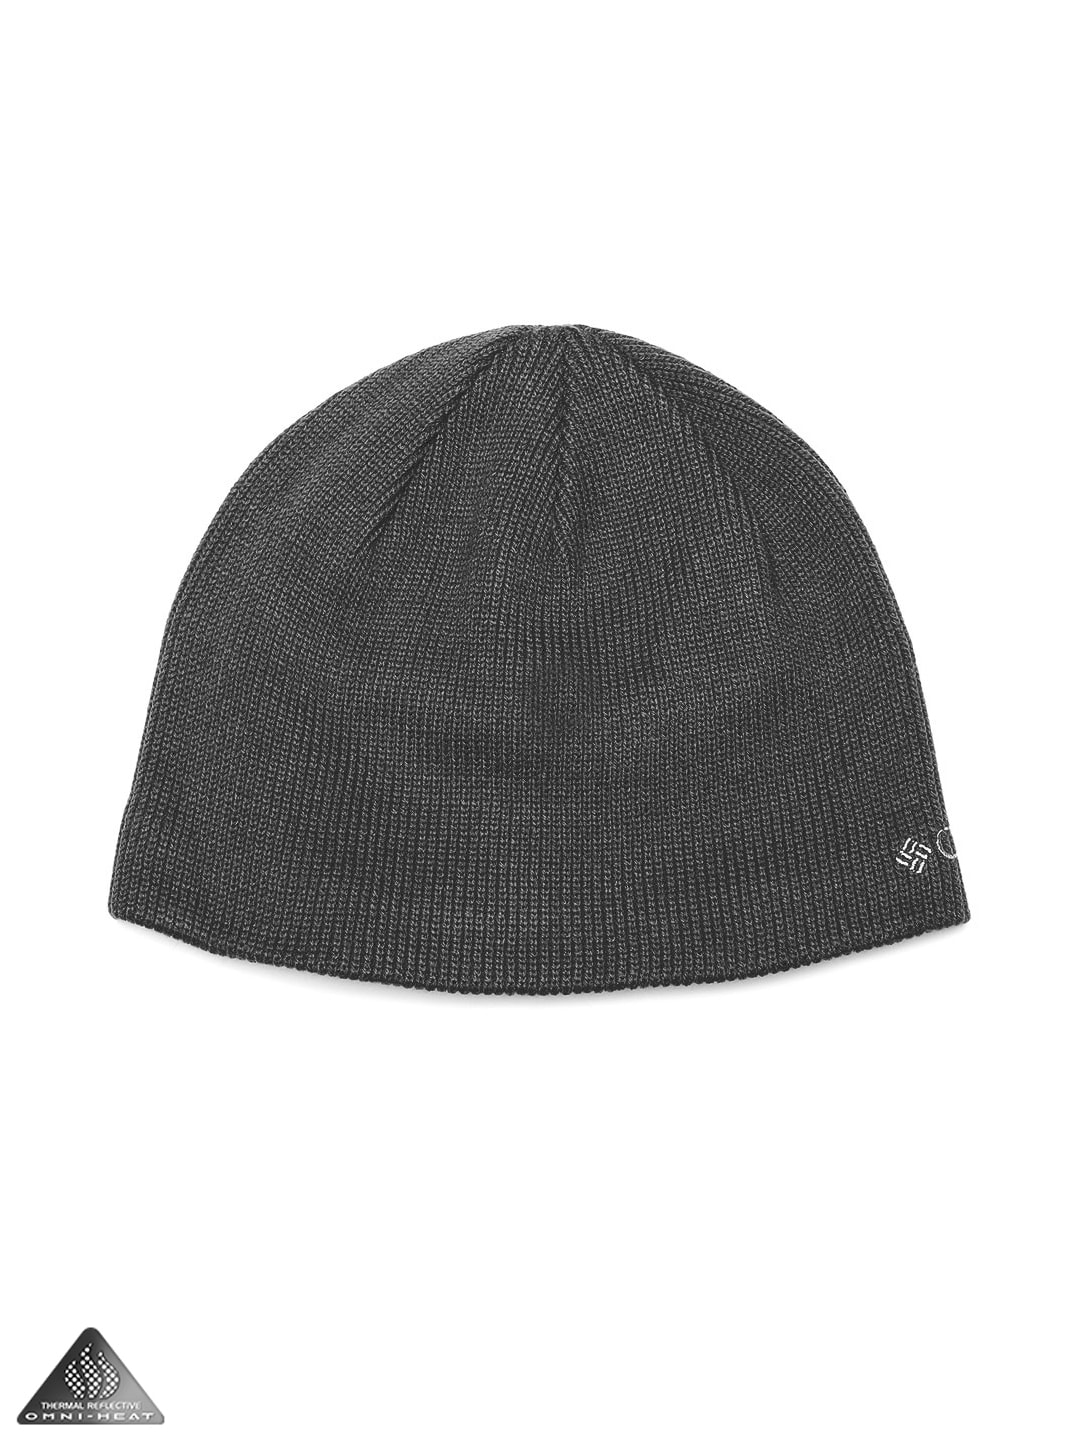 Men Hats Hat - Buy Men Hats Hat online in India 45b741dd5b13